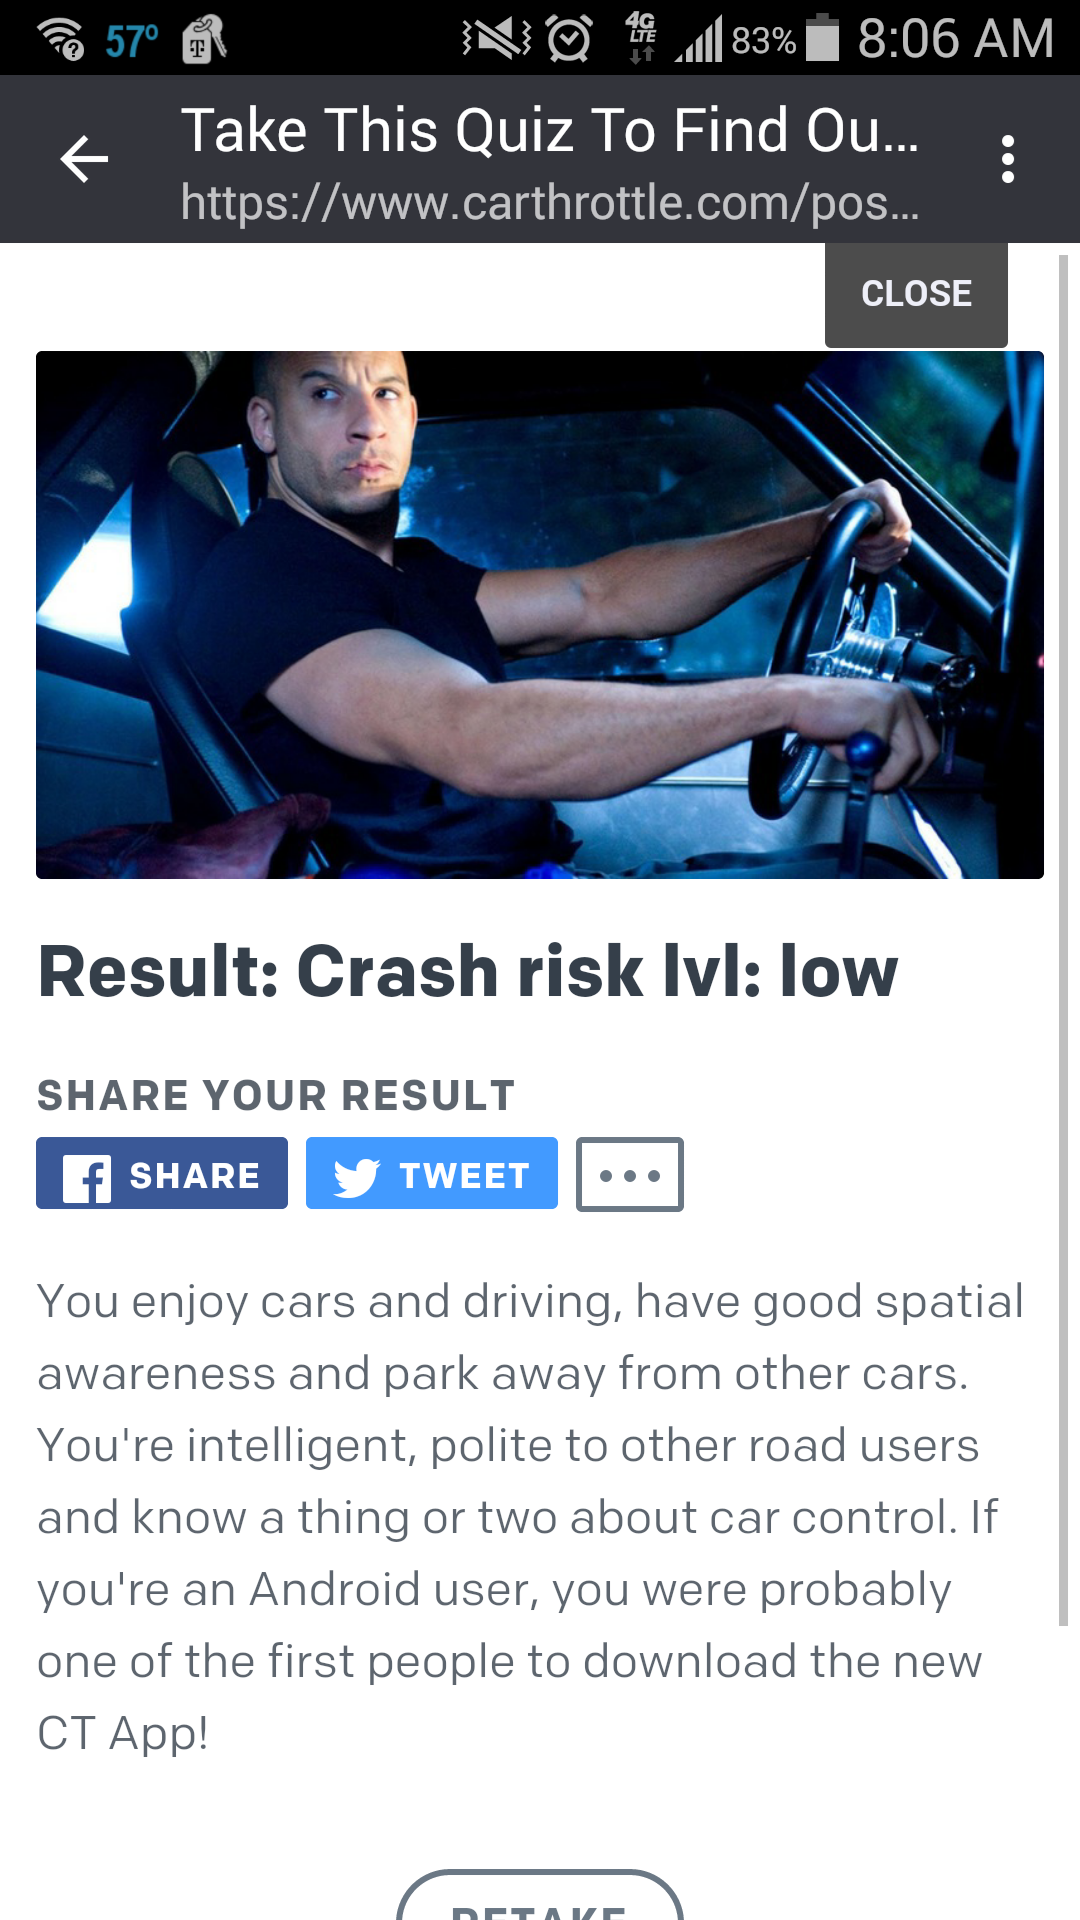 Take This Quiz To Find Out How Much Of A Crash Risk You Are